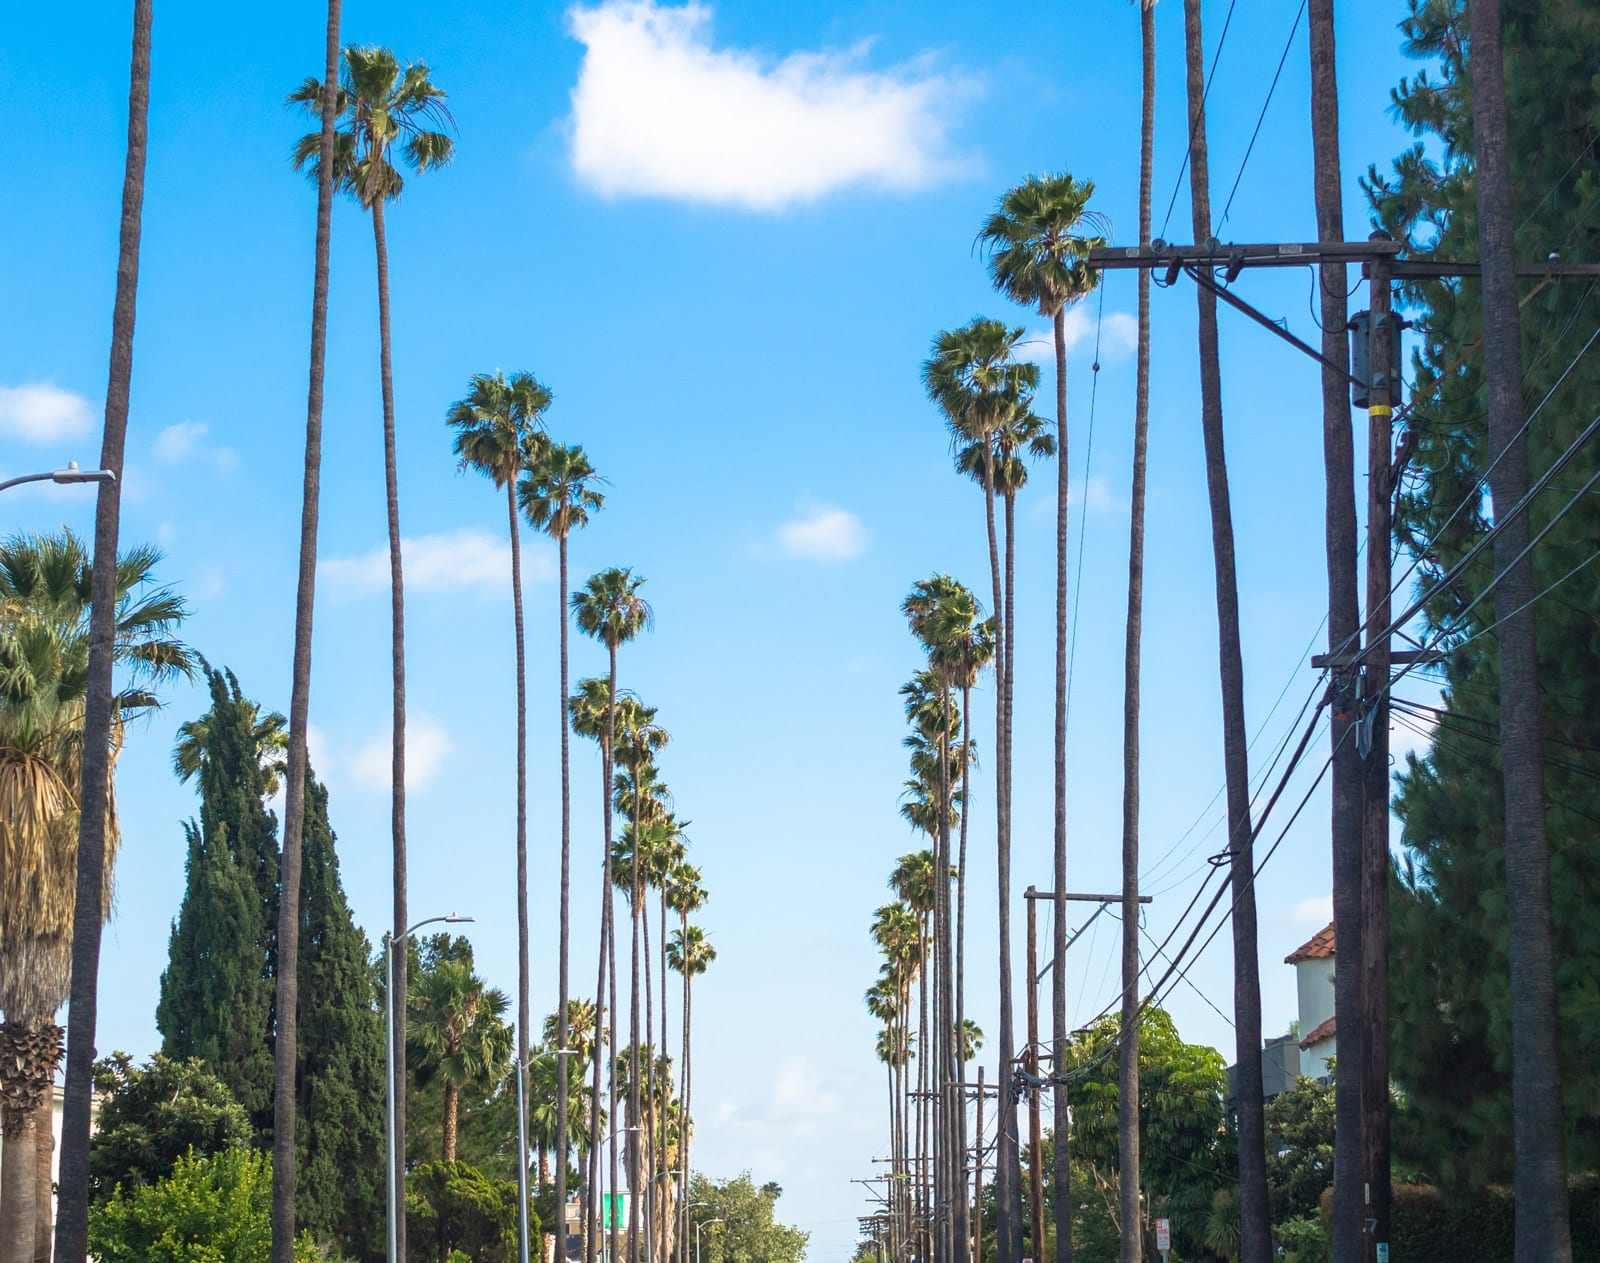 LA street with palm trees in color